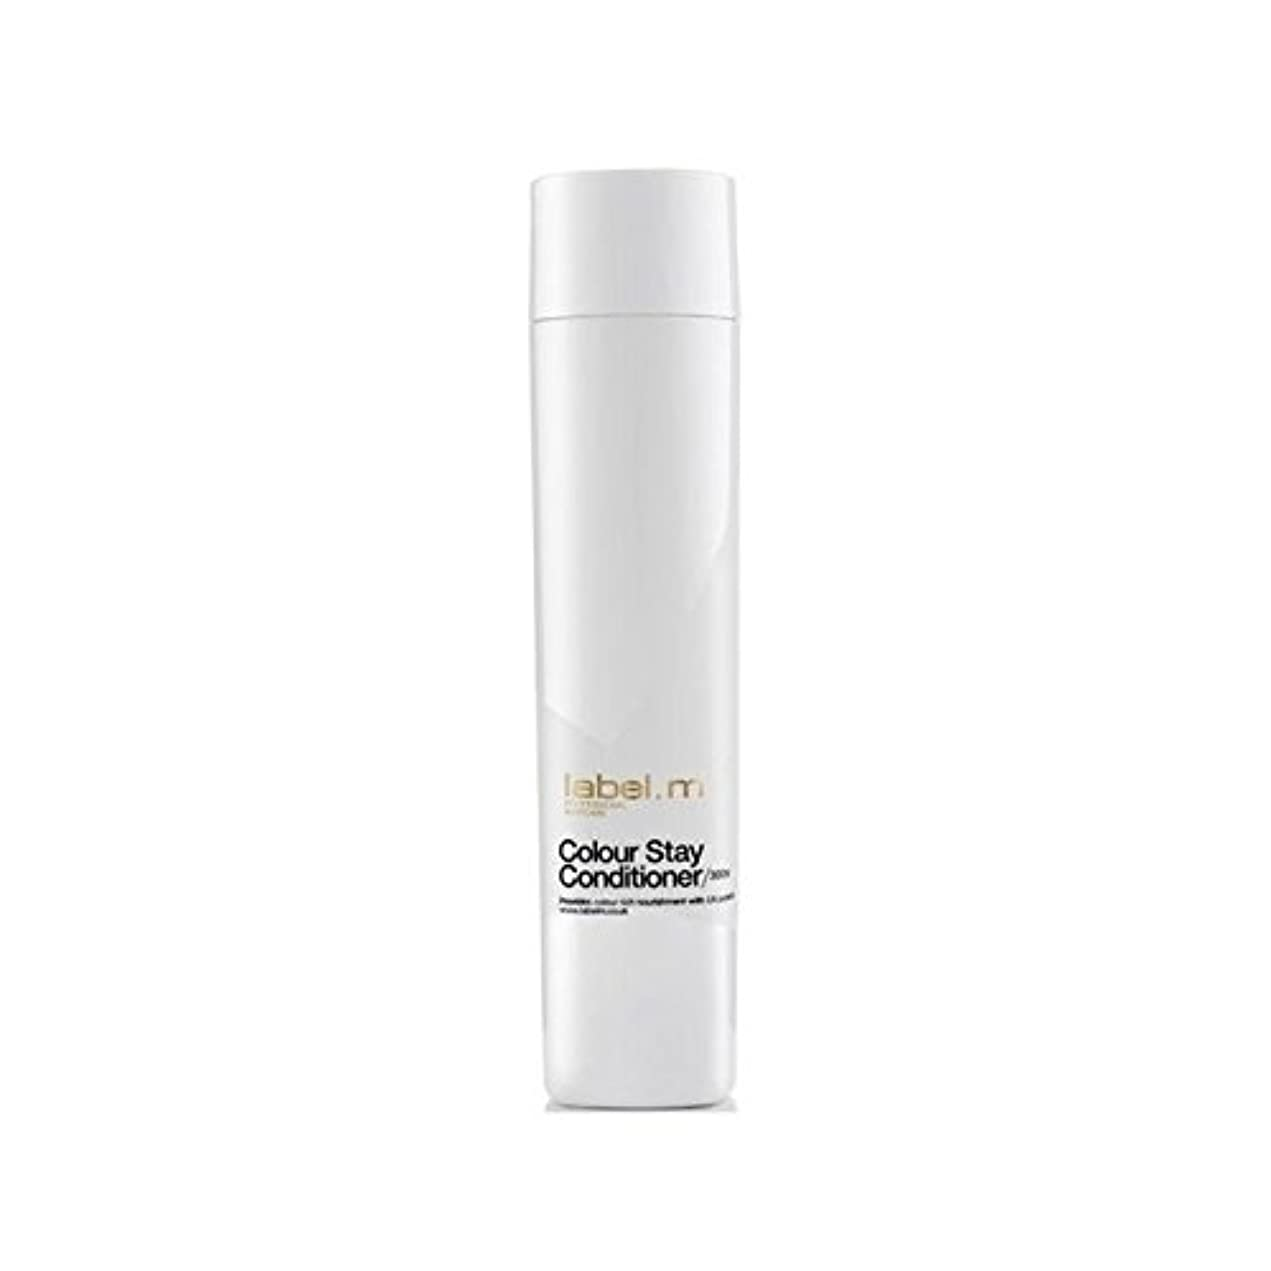 Label.M Colour Stay Conditioner (300ml) (Pack of 6) - .カラーステイショナ(300ミリリットル) x6 [並行輸入品]